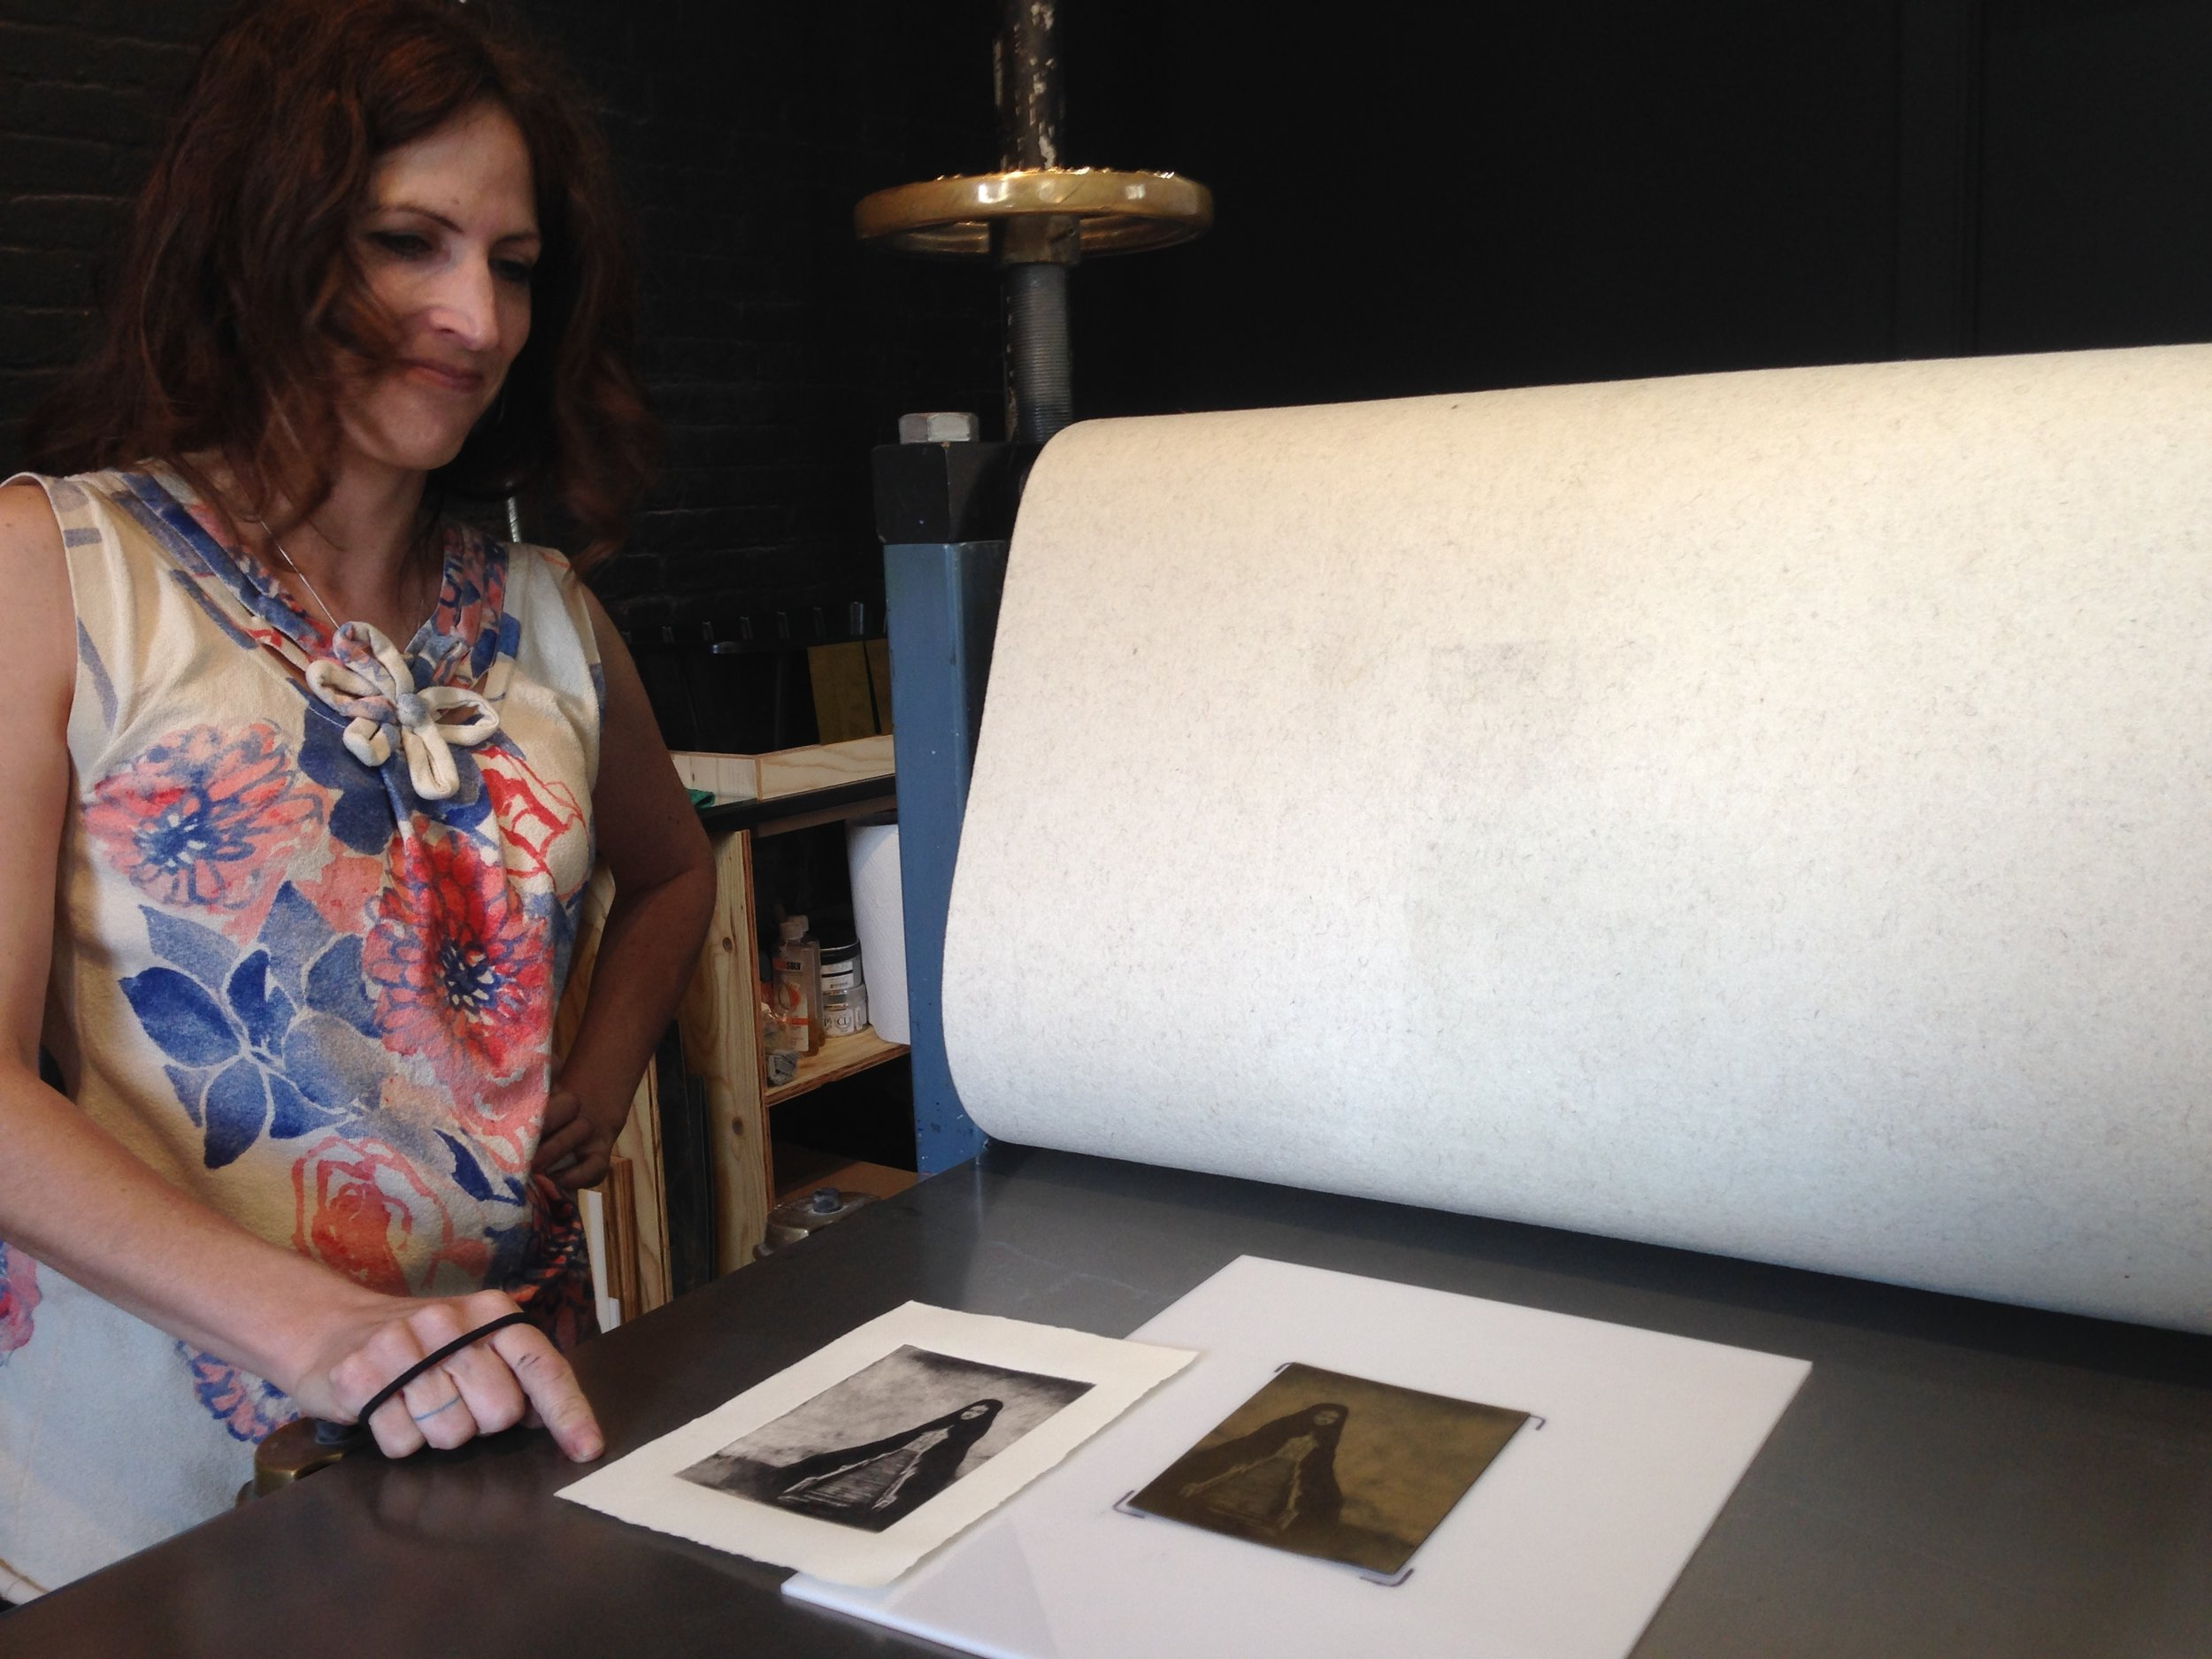 Processus member Sherry Hern in 2015. Polymer etching.